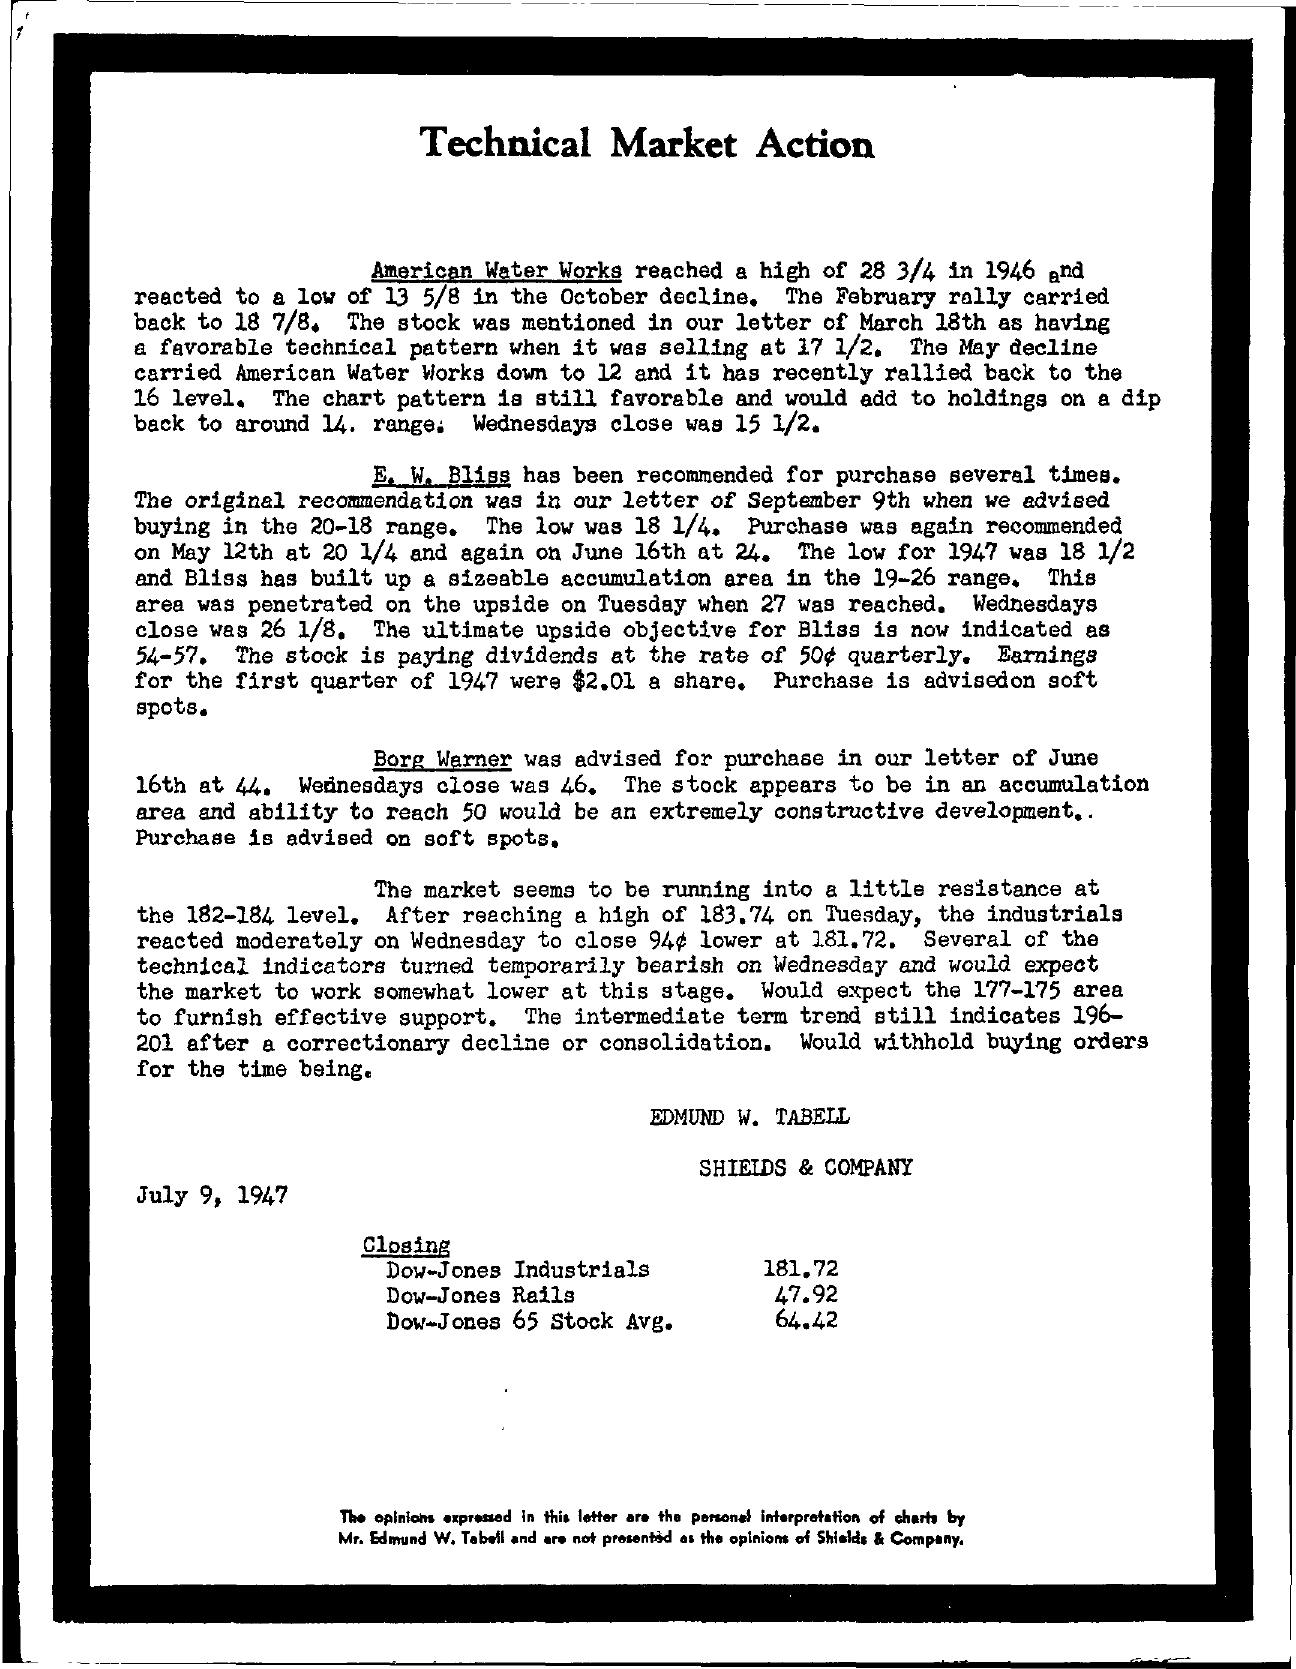 Tabell's Market Letter - July 09, 1947